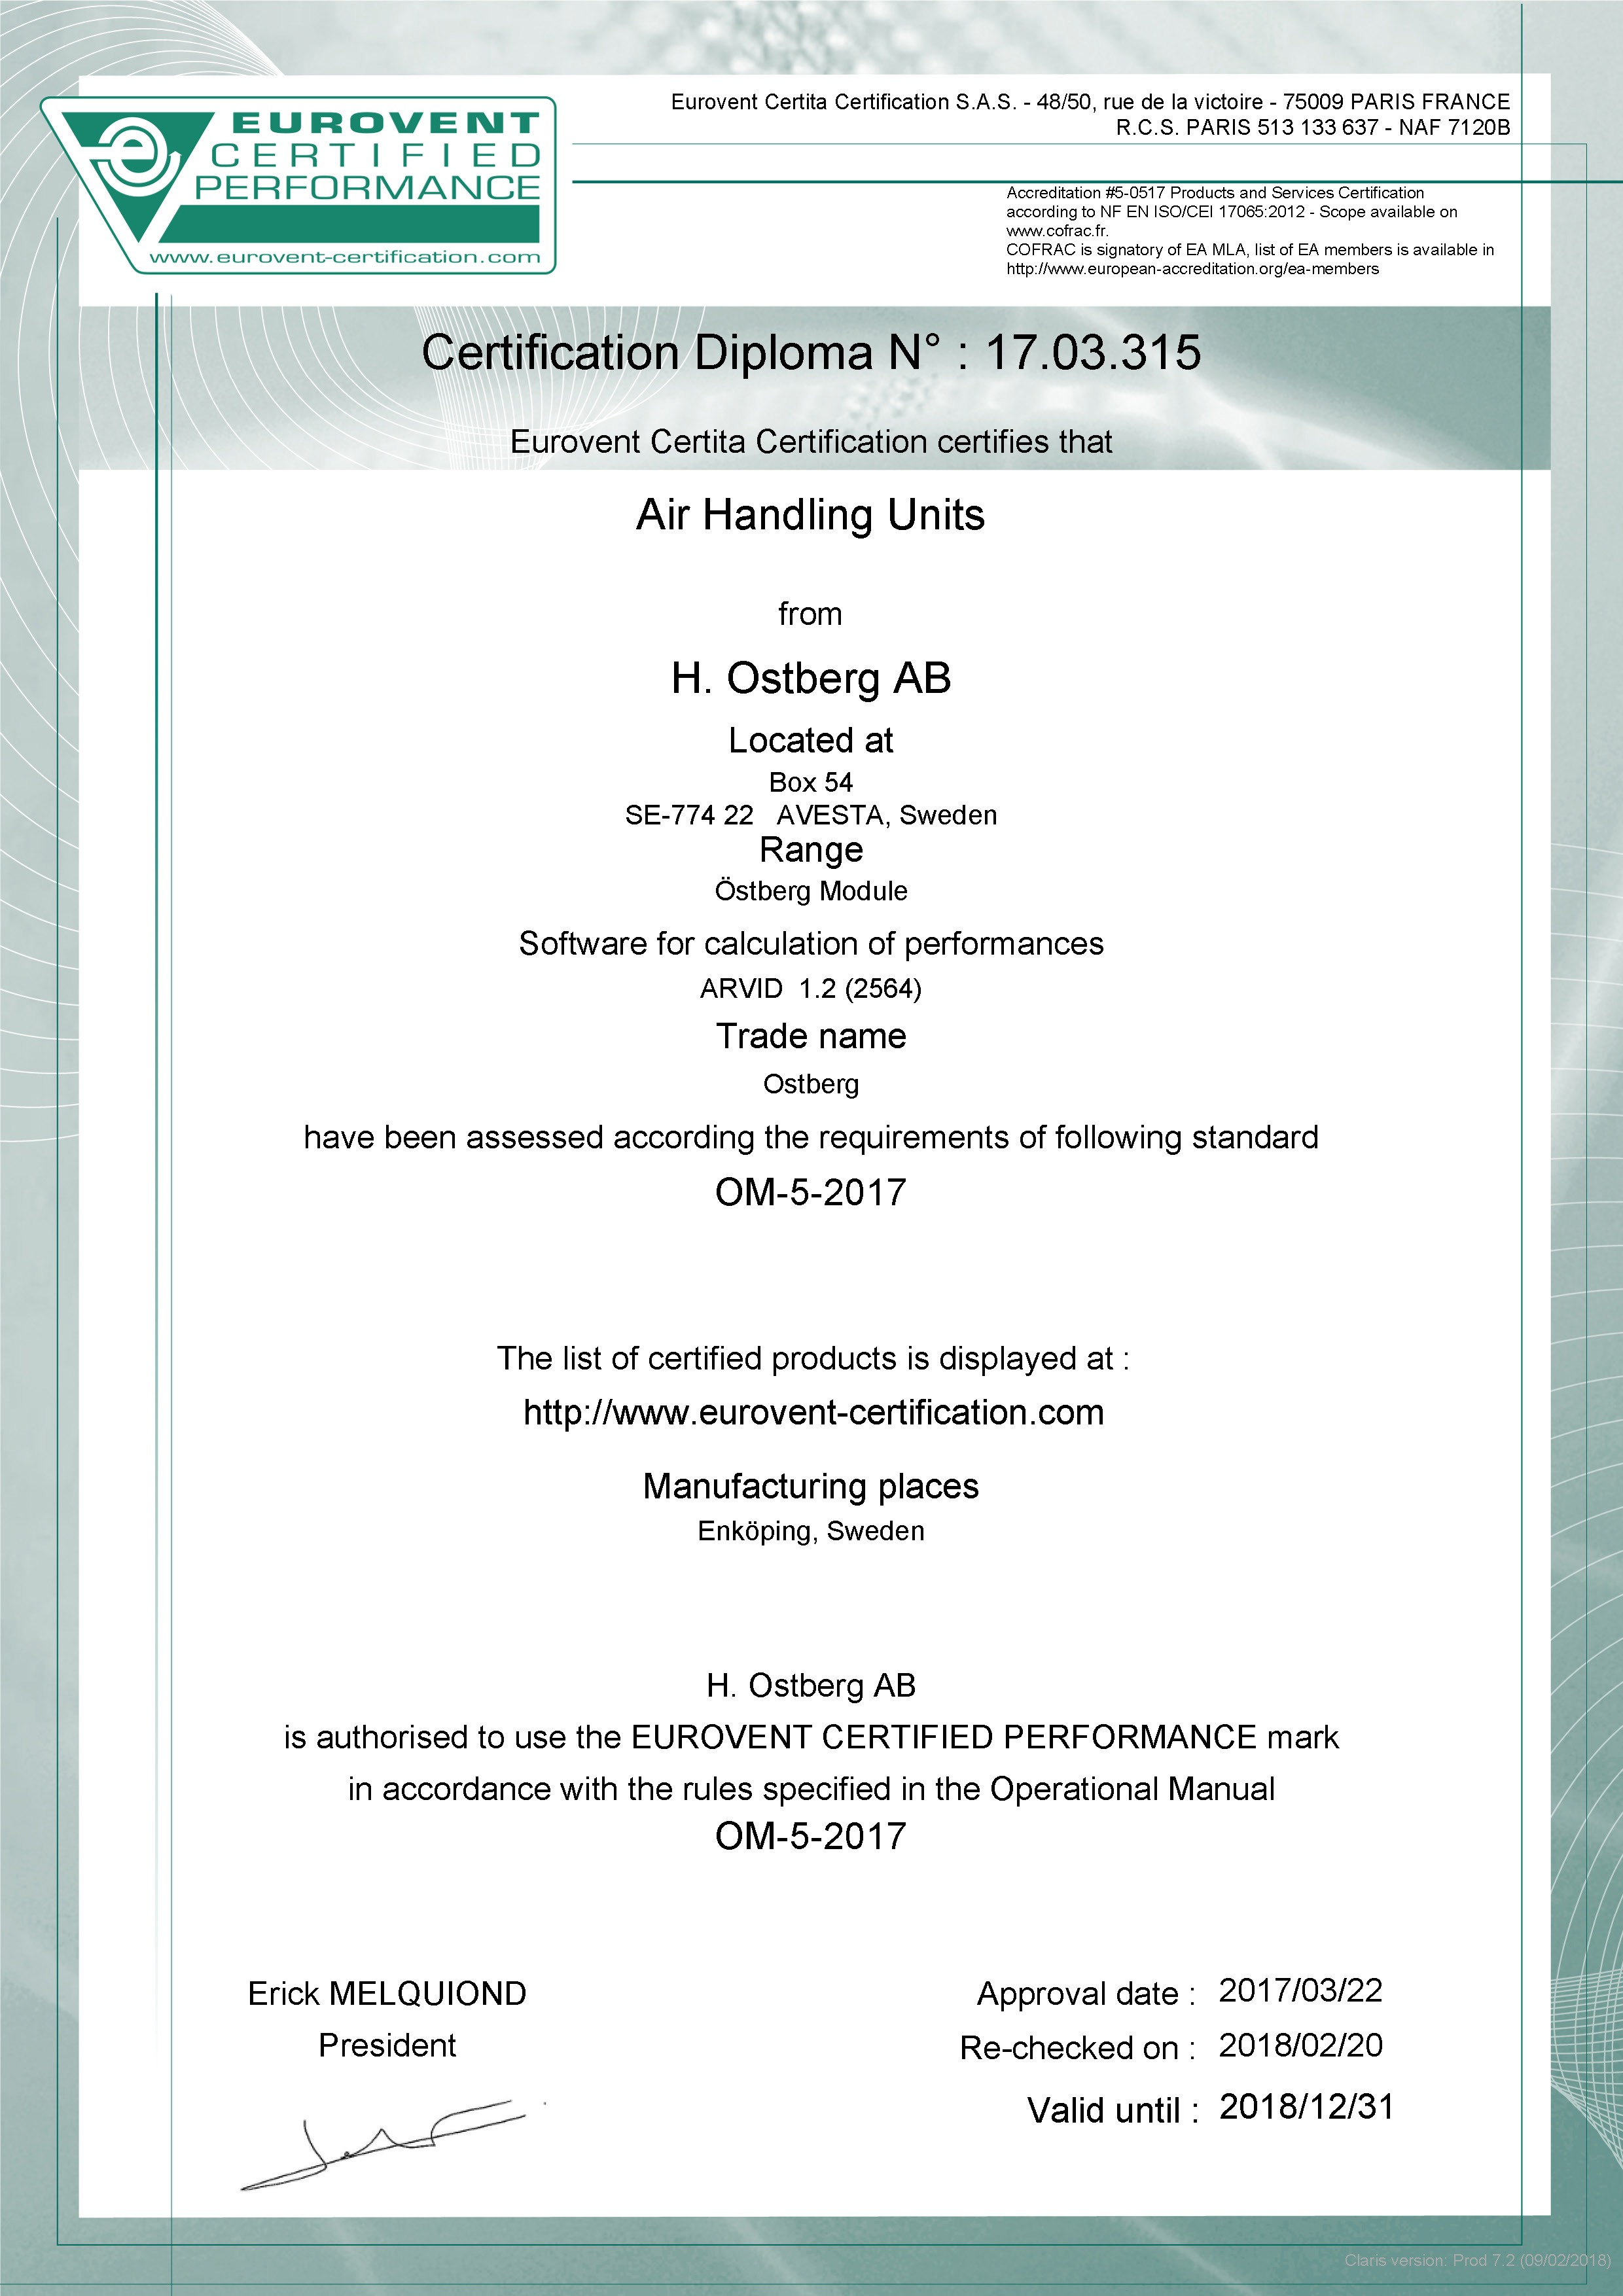 Eurovent Certifikation